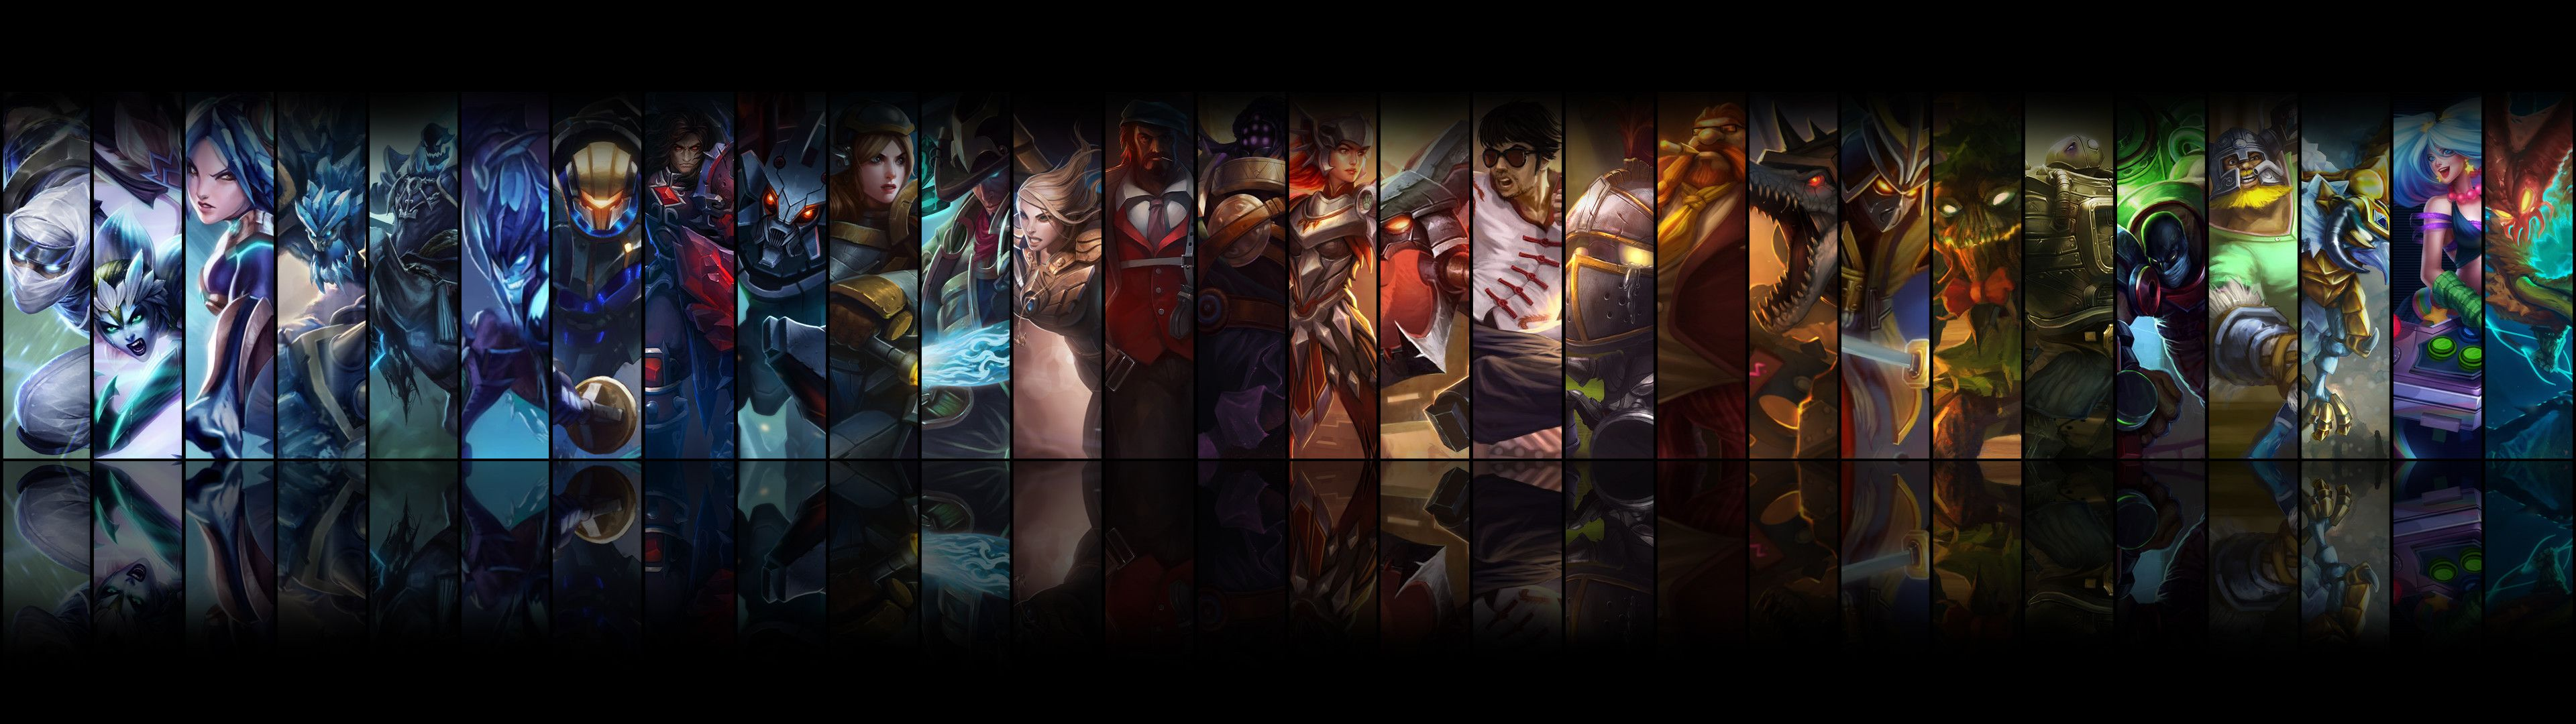 Marvel 3840x1080 Hd Dual Monitor Wallpapers Top Free